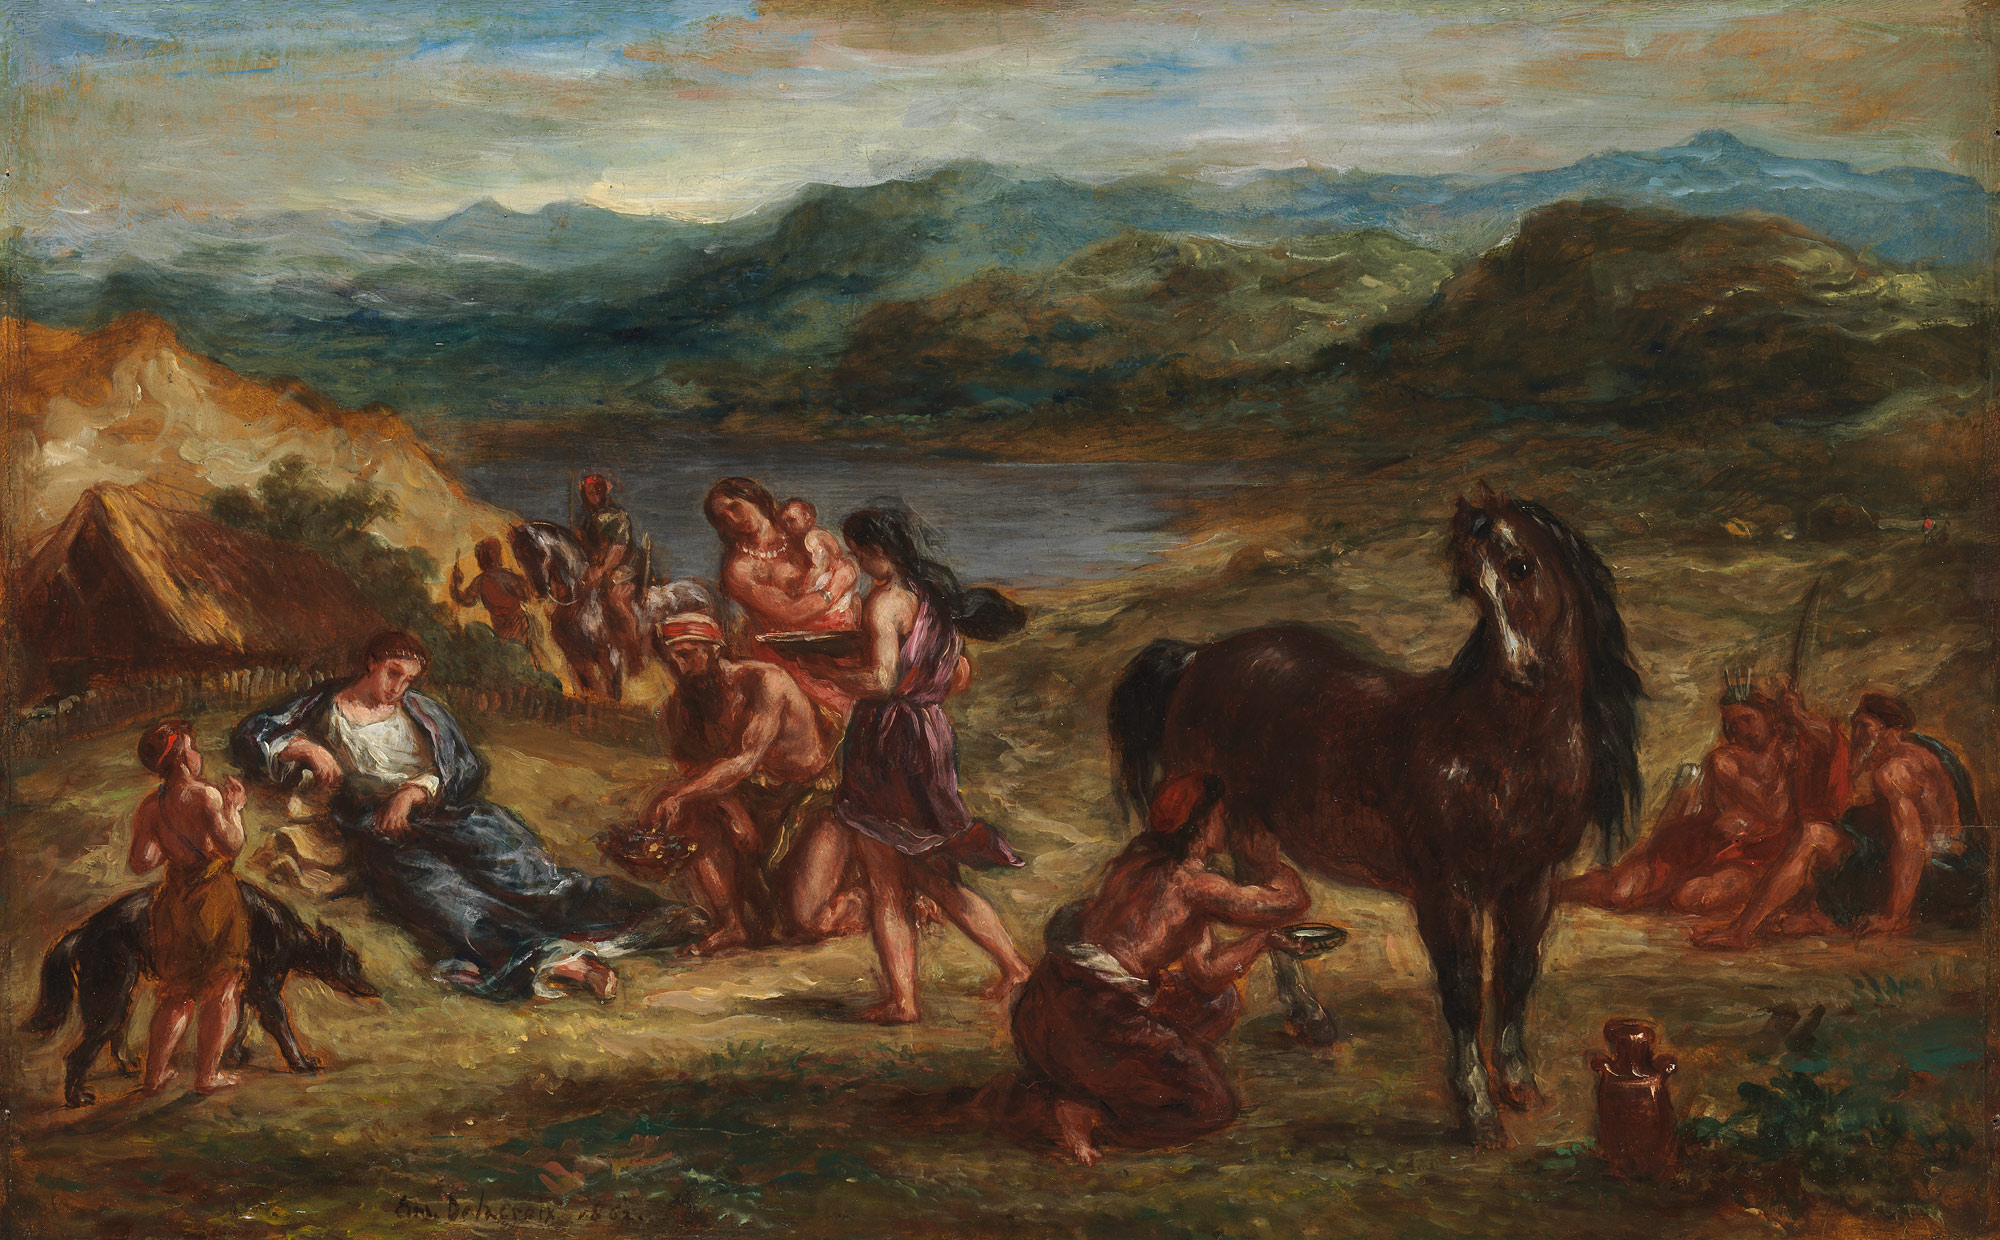 Ovid among the Scythians